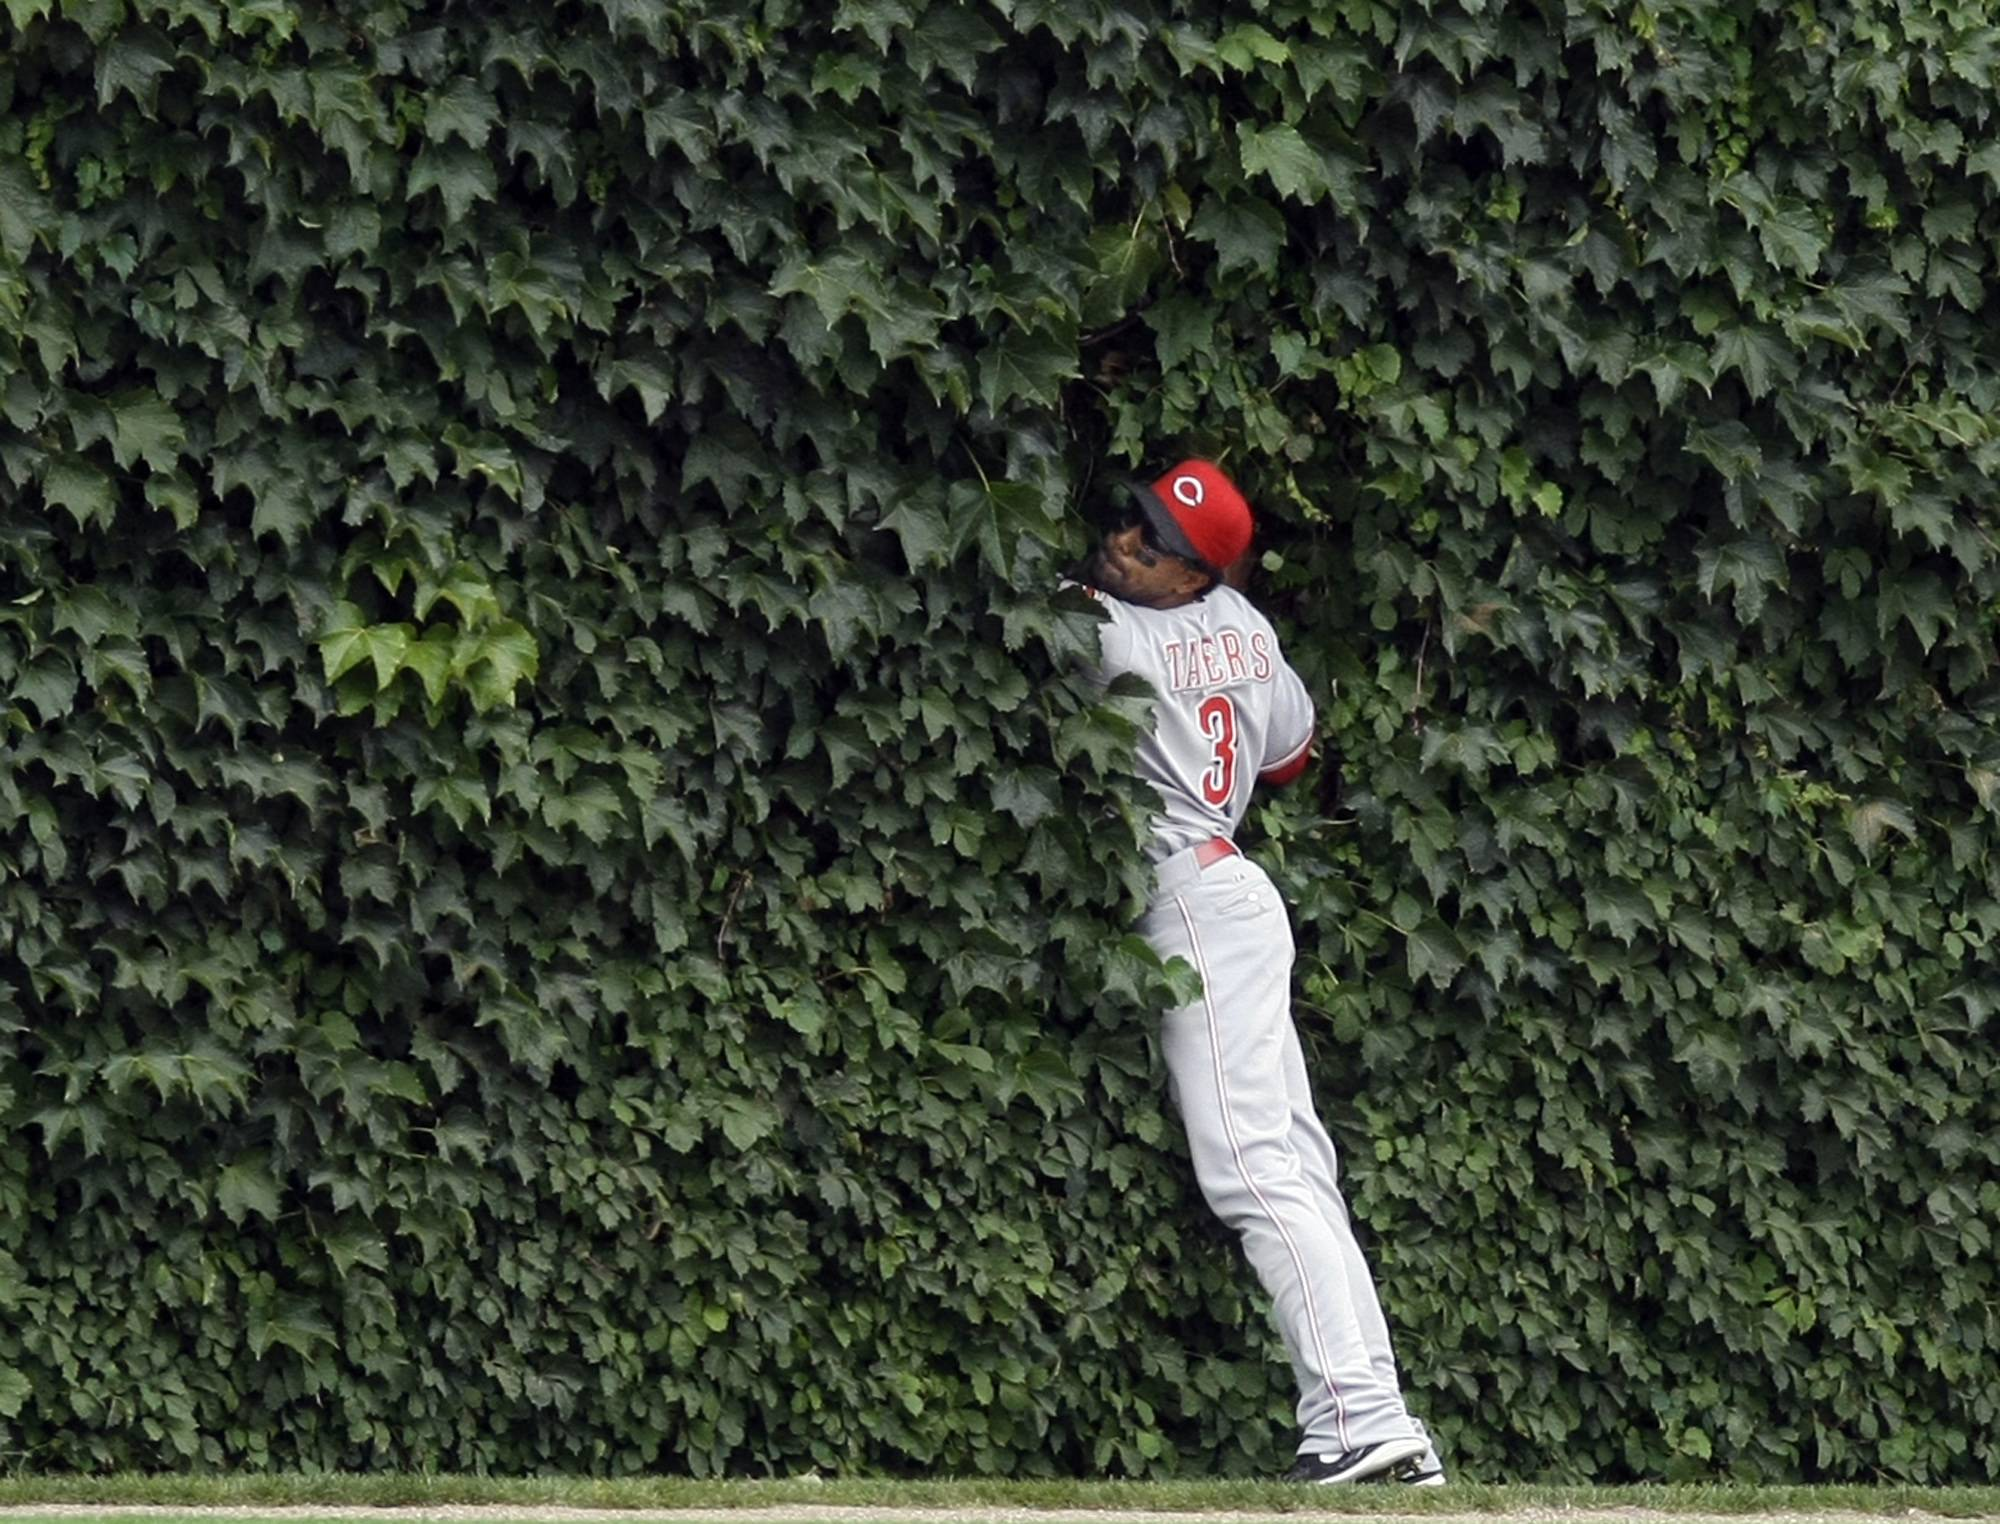 Cincinnati Reds center fielder Willy Taveras is almost lost in the ivy after catching a long fly ball during a baseball game against the Chicago Cubs at Wrigley Field in Chicago. One ball flies into Wrigley Field's ivy-covered wall and two pop out. It's happened a few times over the years, the result, some say of balls being hit there during batting practice and remaining there until something slams into the wall to dislodge it. But there are also stories that players hid balls there in case they needed to find one quickly to throw a runner out.